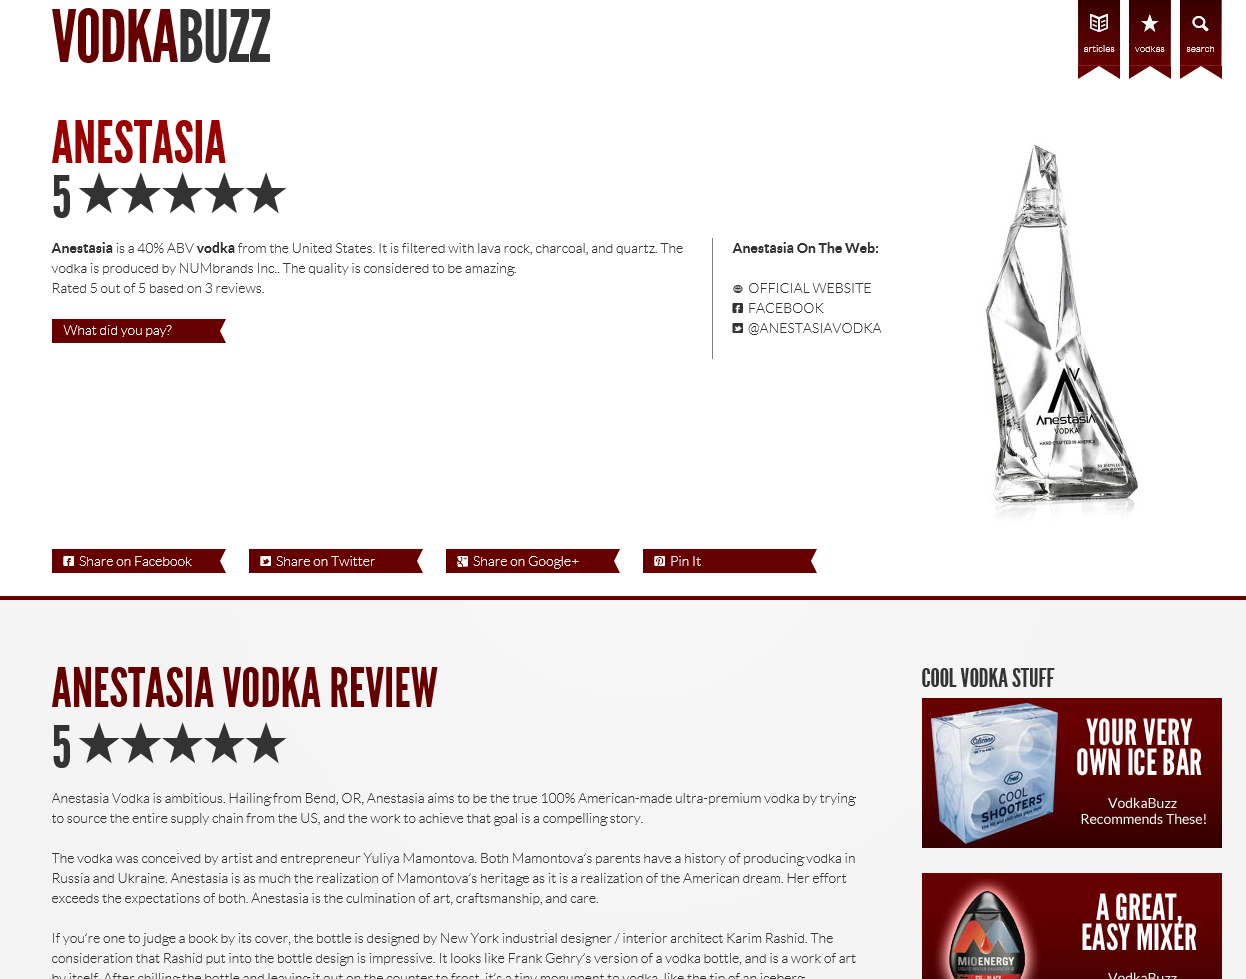 AnestasiA_Vodka_5_Star_Review_from_VodkaBuzz_2015